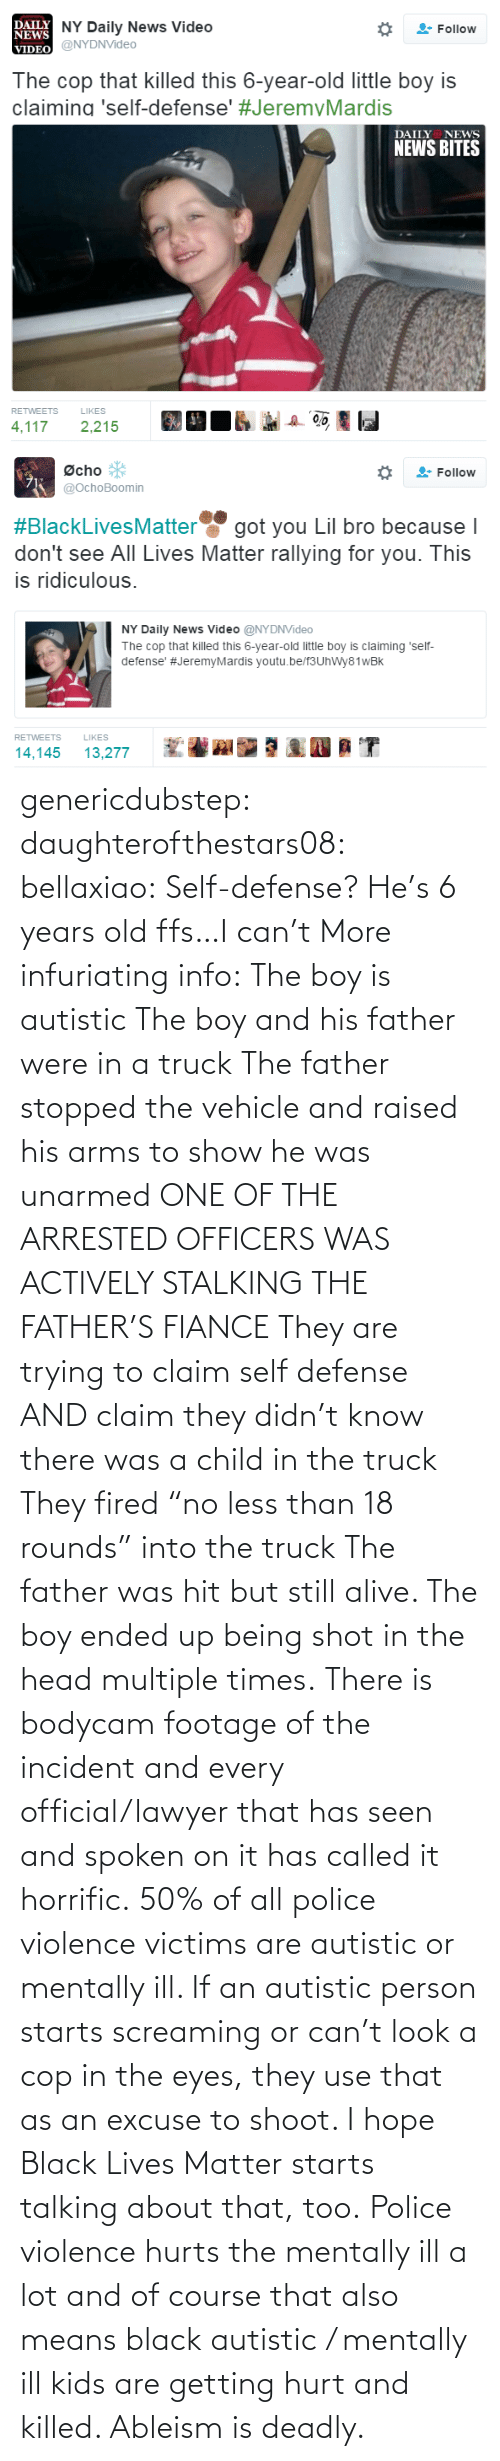 "defense: genericdubstep: daughterofthestars08:  bellaxiao:  Self-defense? He's 6 years old ffs…I can't  More infuriating info: The boy is autistic The boy and his father were in a truck The father stopped the vehicle and raised his arms to show he was unarmed ONE OF THE ARRESTED OFFICERS WAS ACTIVELY STALKING THE FATHER'S FIANCE They are trying to claim self defense AND claim they didn't know there was a child in the truck They fired ""no less than 18 rounds"" into the truck The father was hit but still alive. The boy ended up being shot in the head multiple times. There is bodycam footage of the incident and every official/lawyer that has seen and spoken on it has called it horrific.  50% of all police violence victims are autistic or mentally ill. If an autistic person starts screaming or can't look a cop in the eyes, they use that as an excuse to shoot. I hope Black Lives Matter starts talking about that, too. Police violence hurts the mentally ill a lot and of course that also means black autistic / mentally ill kids are getting hurt and killed. Ableism is deadly."